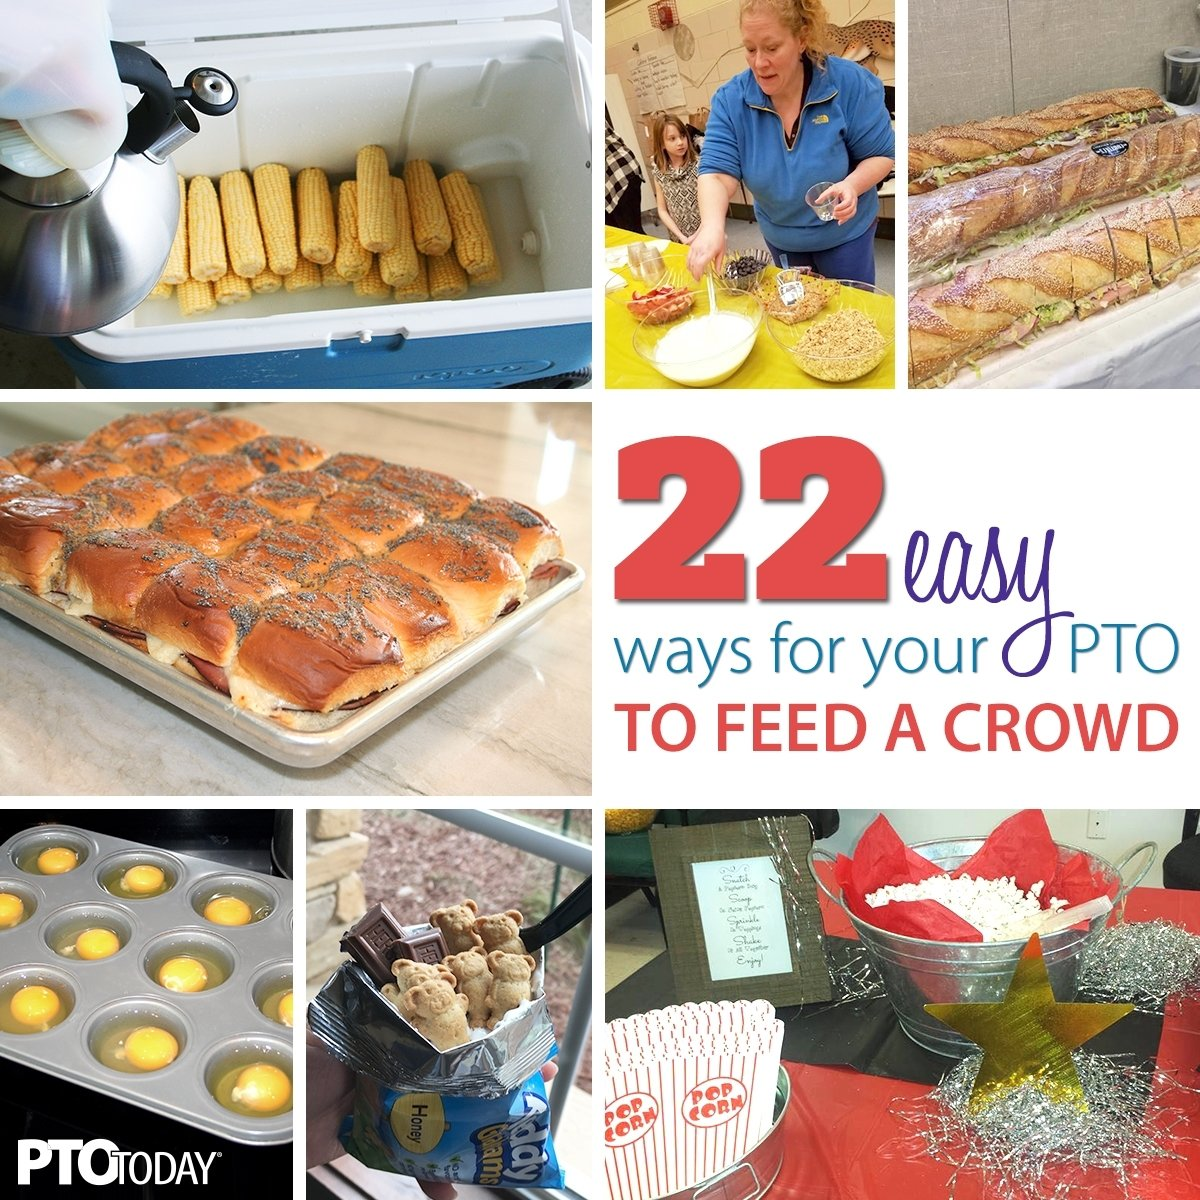 10 Great Dinner Ideas For Large Groups 22 easy meal ideas for large groups pto today 2 2021